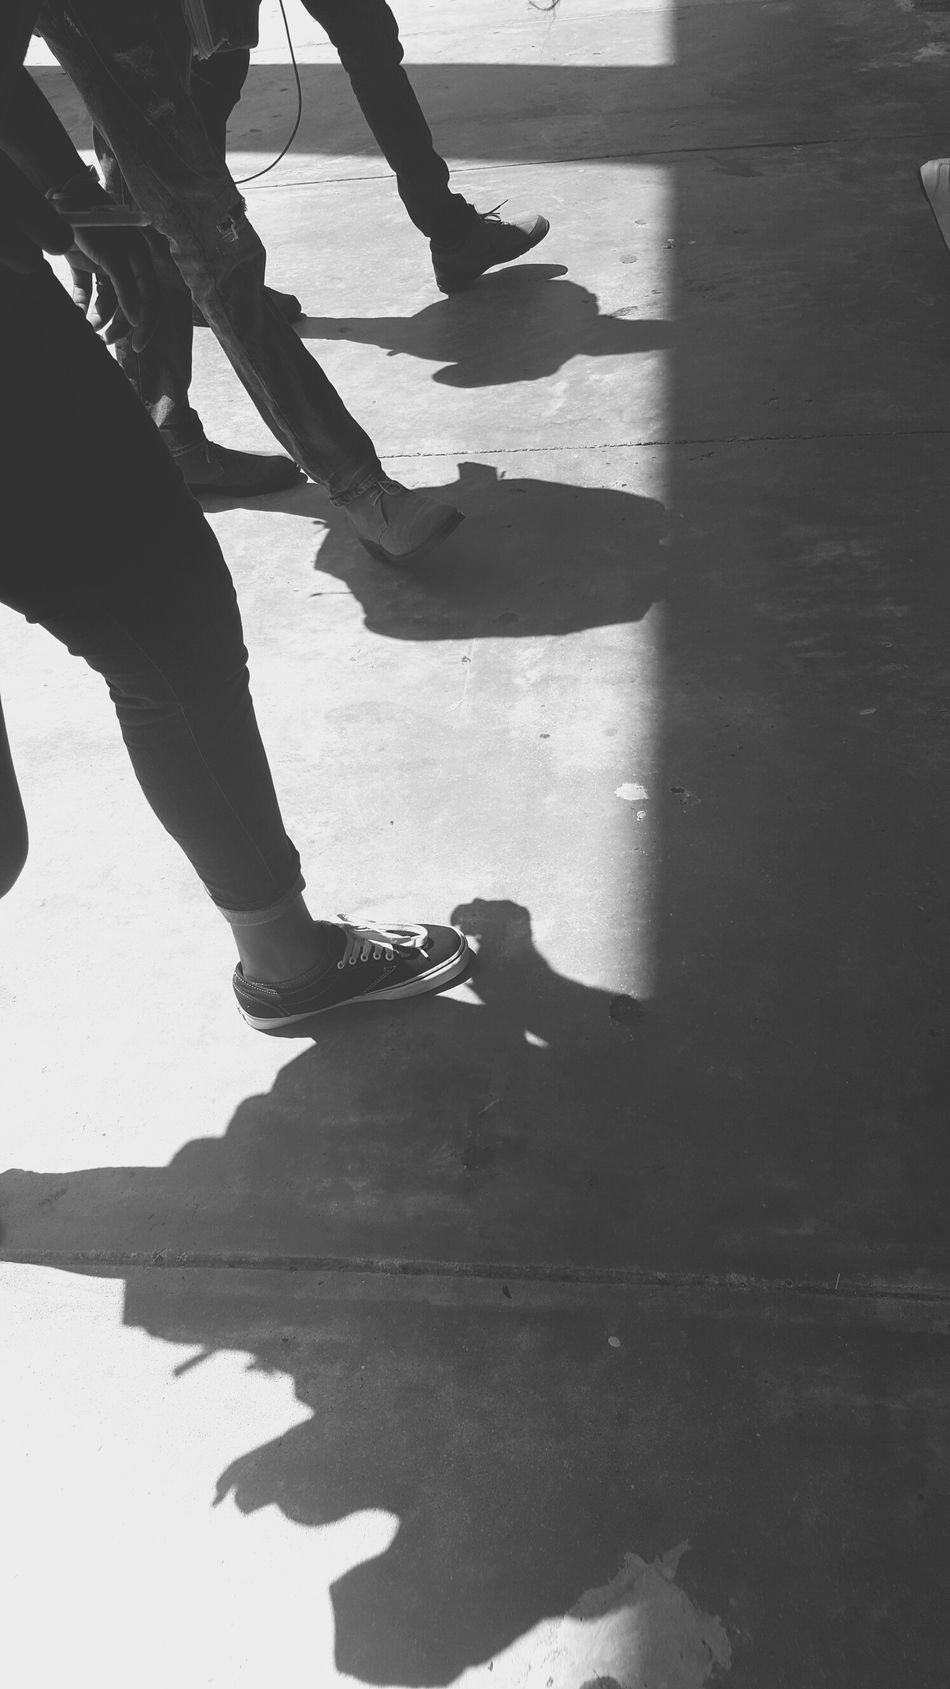 Up Close Street Photography Samsung Galaxy S6 Edge S6edgephotography Peoplewalking Afternoon Afternoon Vibe Legsselfie Wallking Blackandwhite Photography B&w Street Photography Streetphotography EyeEmbestshots Shoes Of The Day Shoes Jeans On The Portraitist - 2016 EyeEm Awards Capture The Moment Essence Of Summer On The Way Fine Art Photography light and reflection The City Light